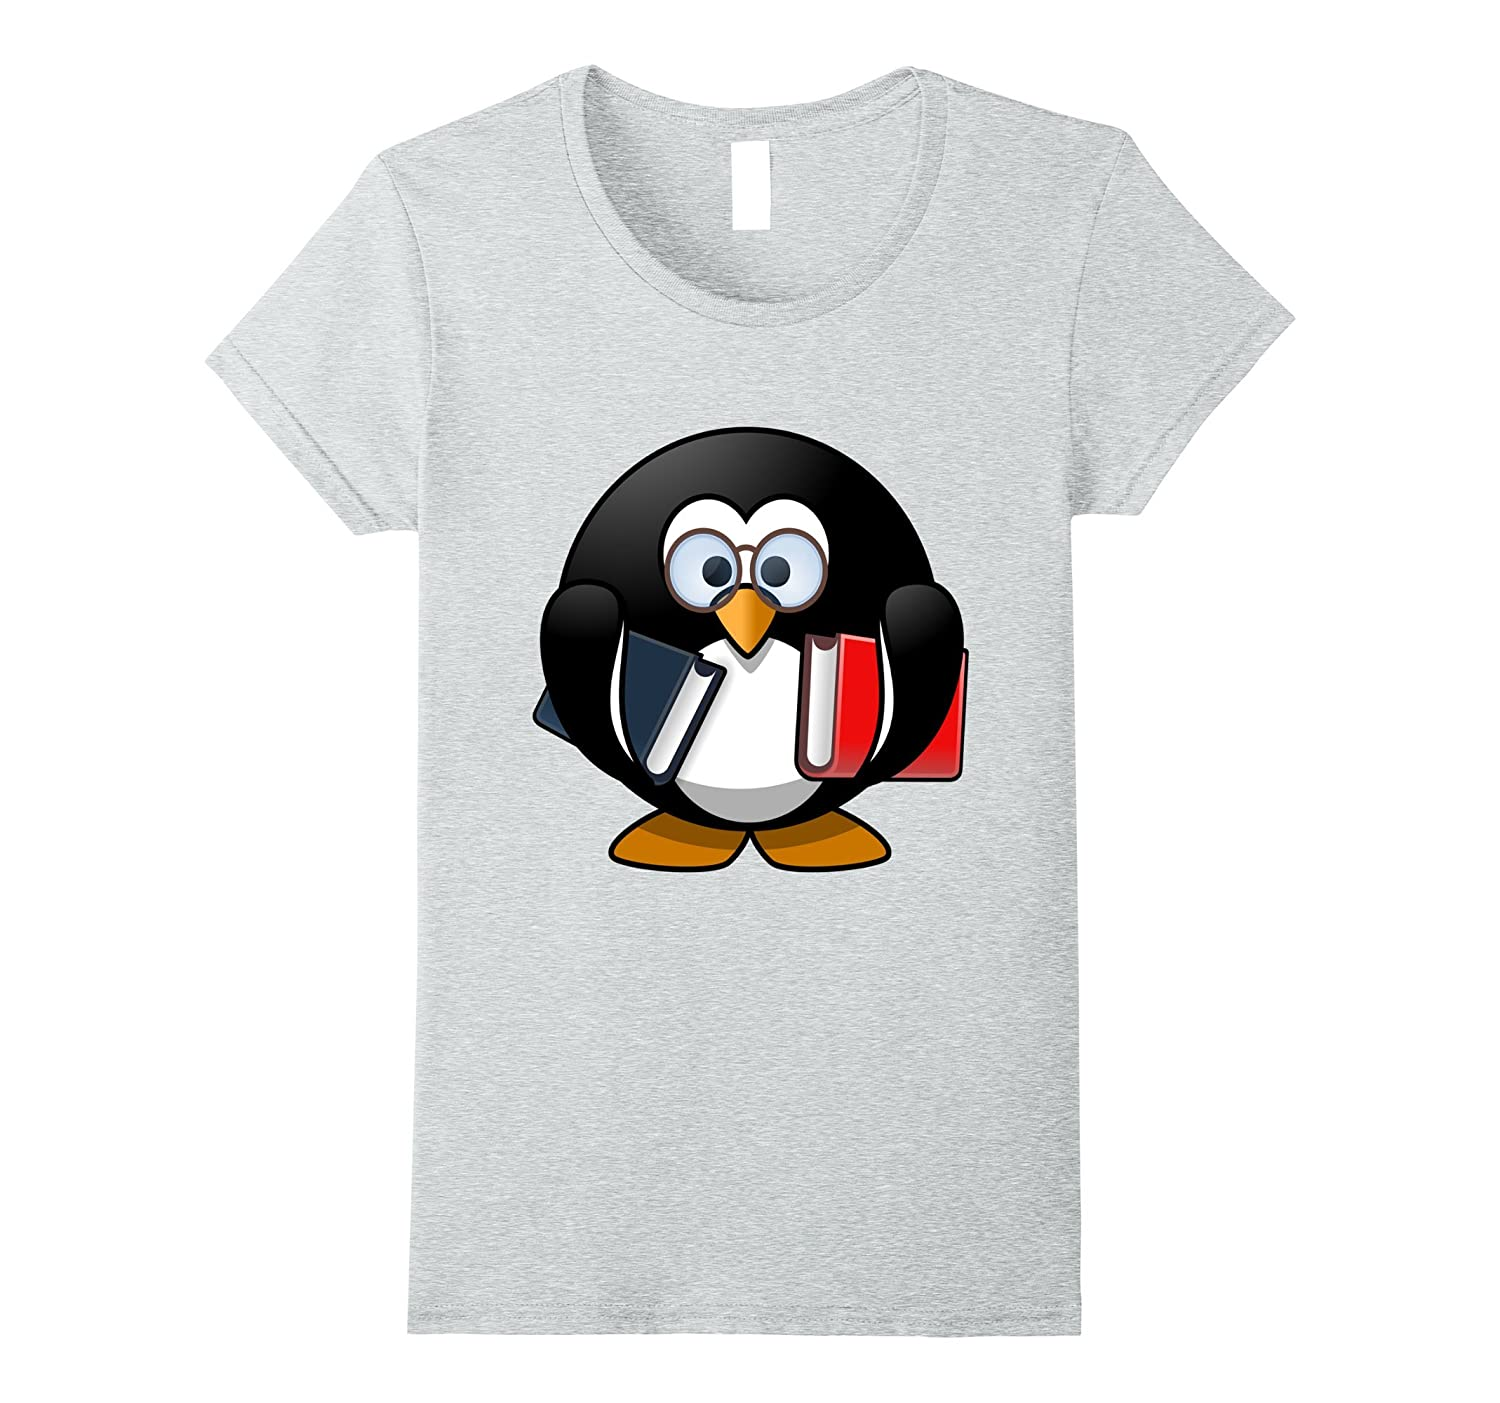 Bookworm Penguin Cartoon T Shirt funny-Teechatpro